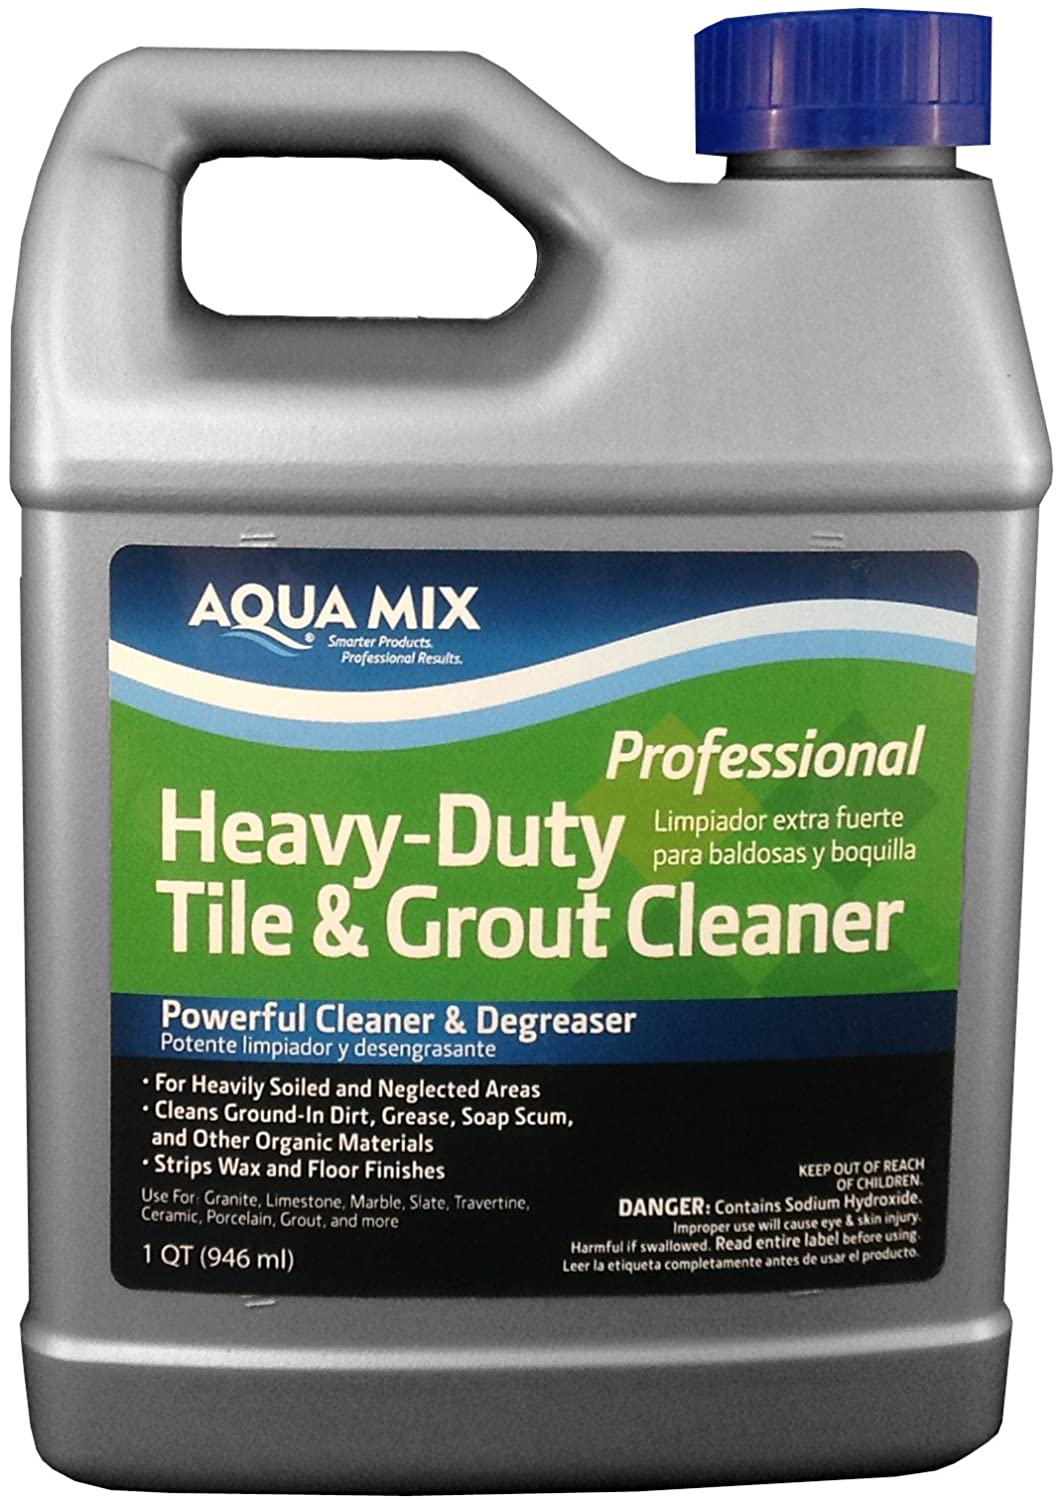 Aqua mix heavy duty tile and grout cleaner quart floor cleaners aqua mix heavy duty tile and grout cleaner quart floor cleaners amazon dailygadgetfo Gallery